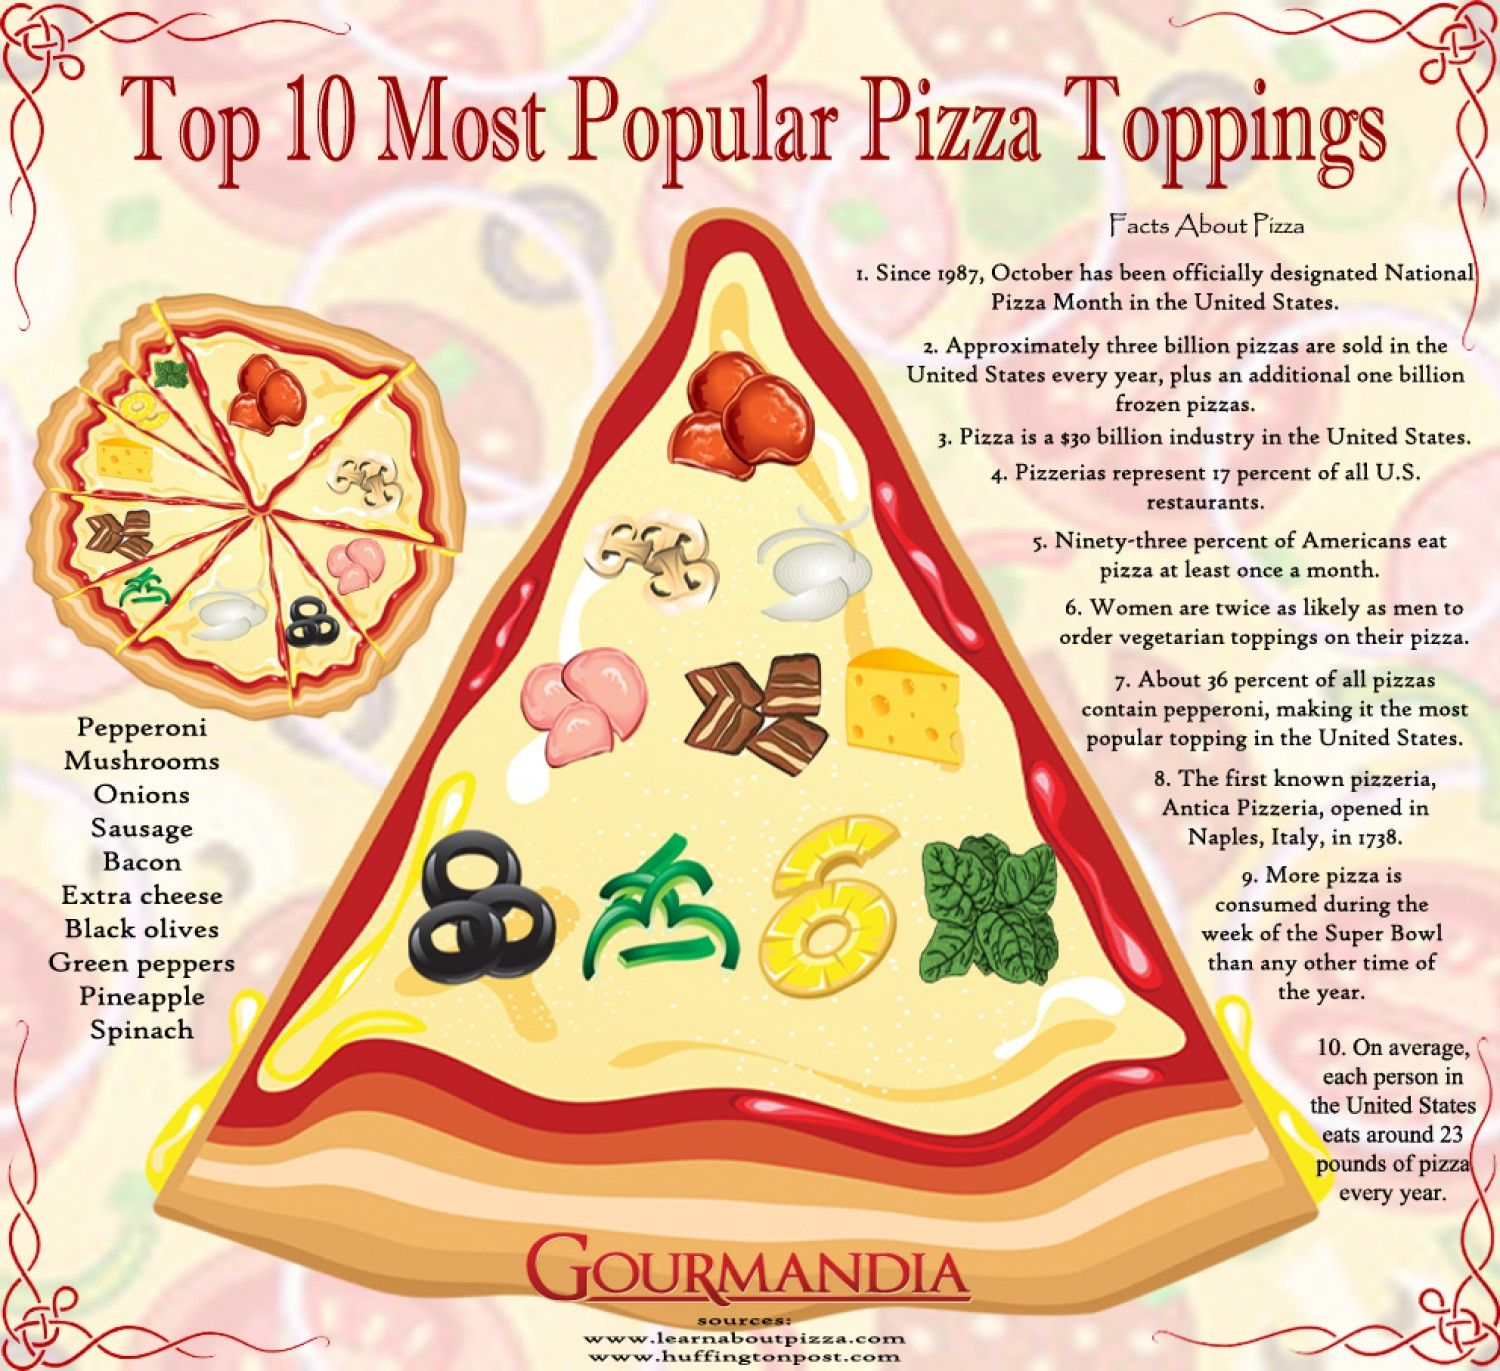 Top 10 Most Popular Pizza Toppings